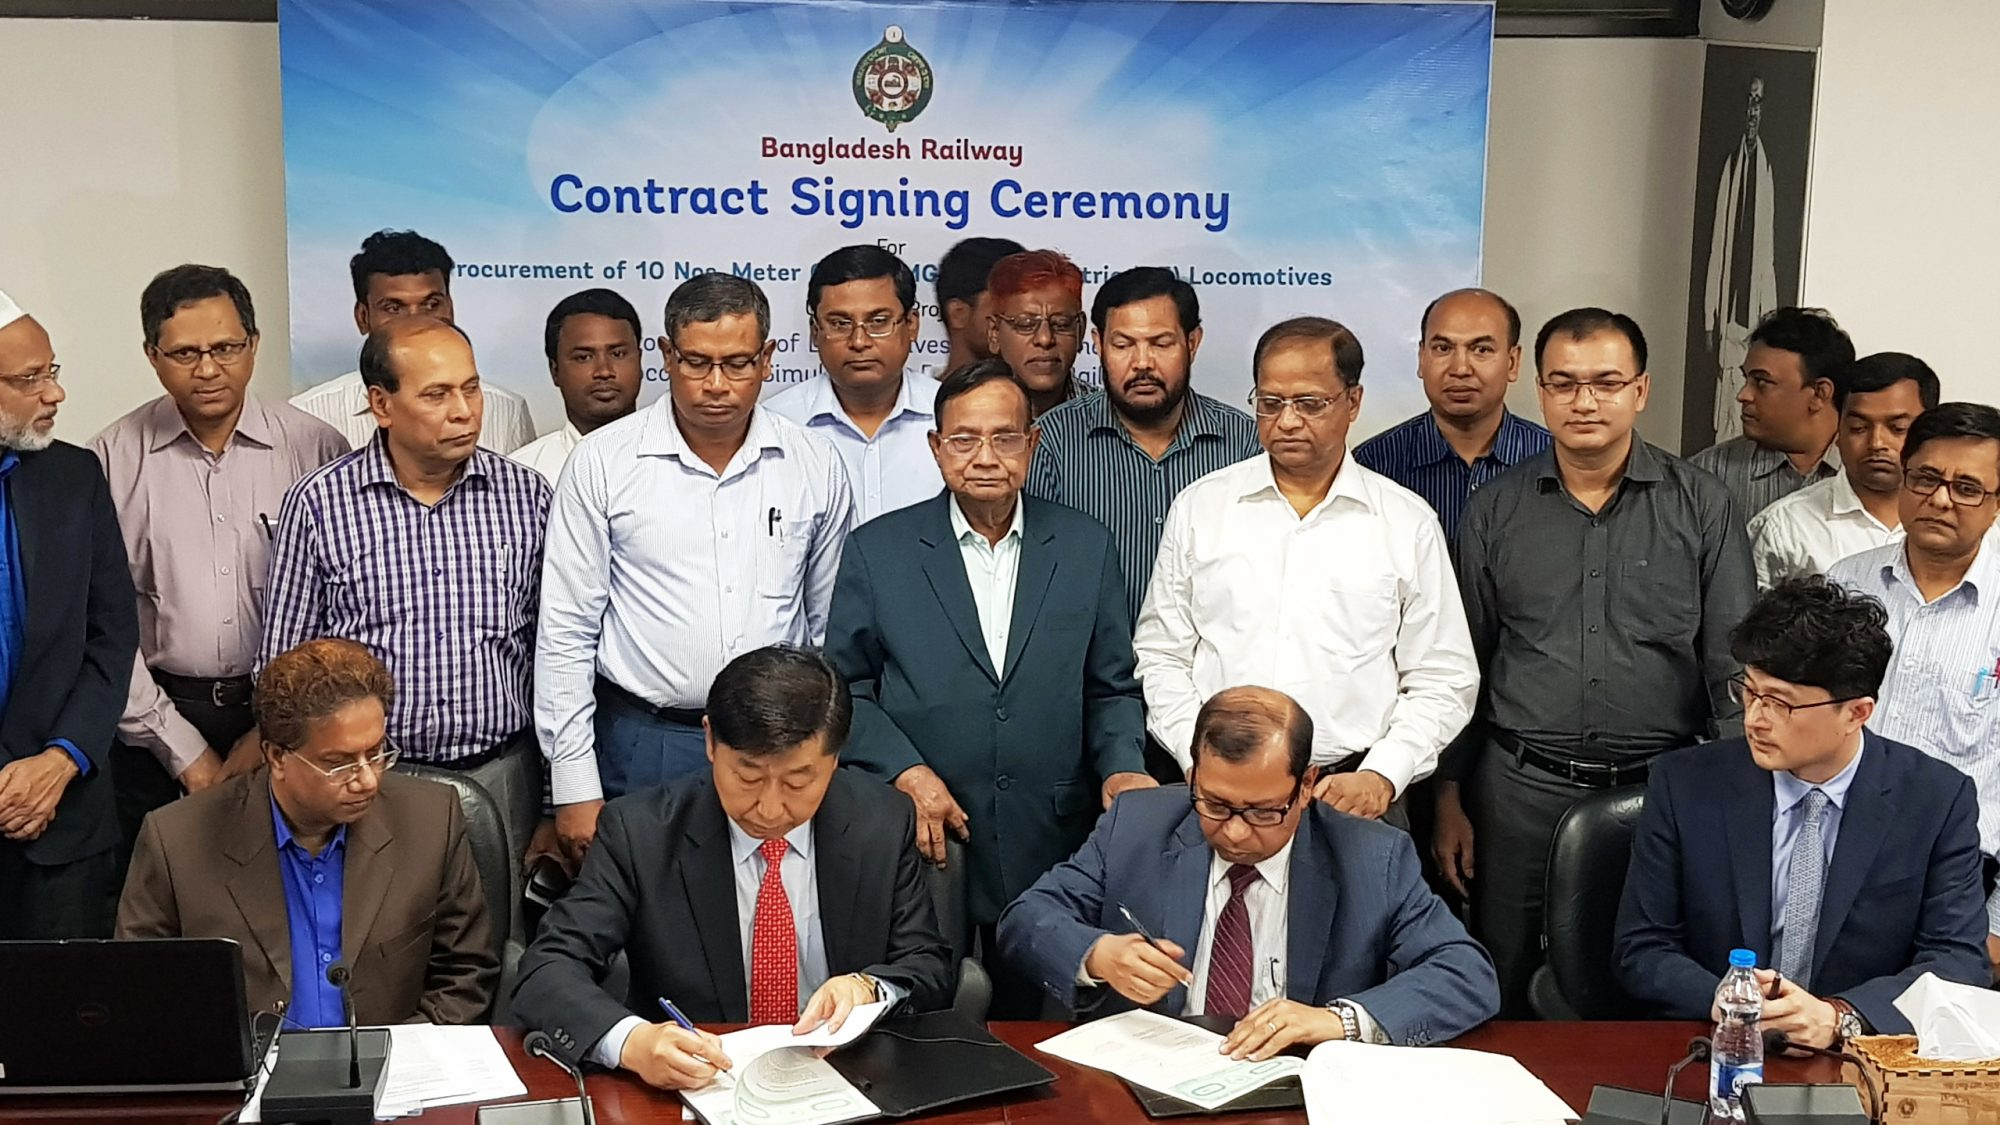 A signing ceremony was held at the offices of the Bangladesh Railway Office on March 17 with Bangaldesh's railway minister in attendance. Photo: Hyundai Rotem.